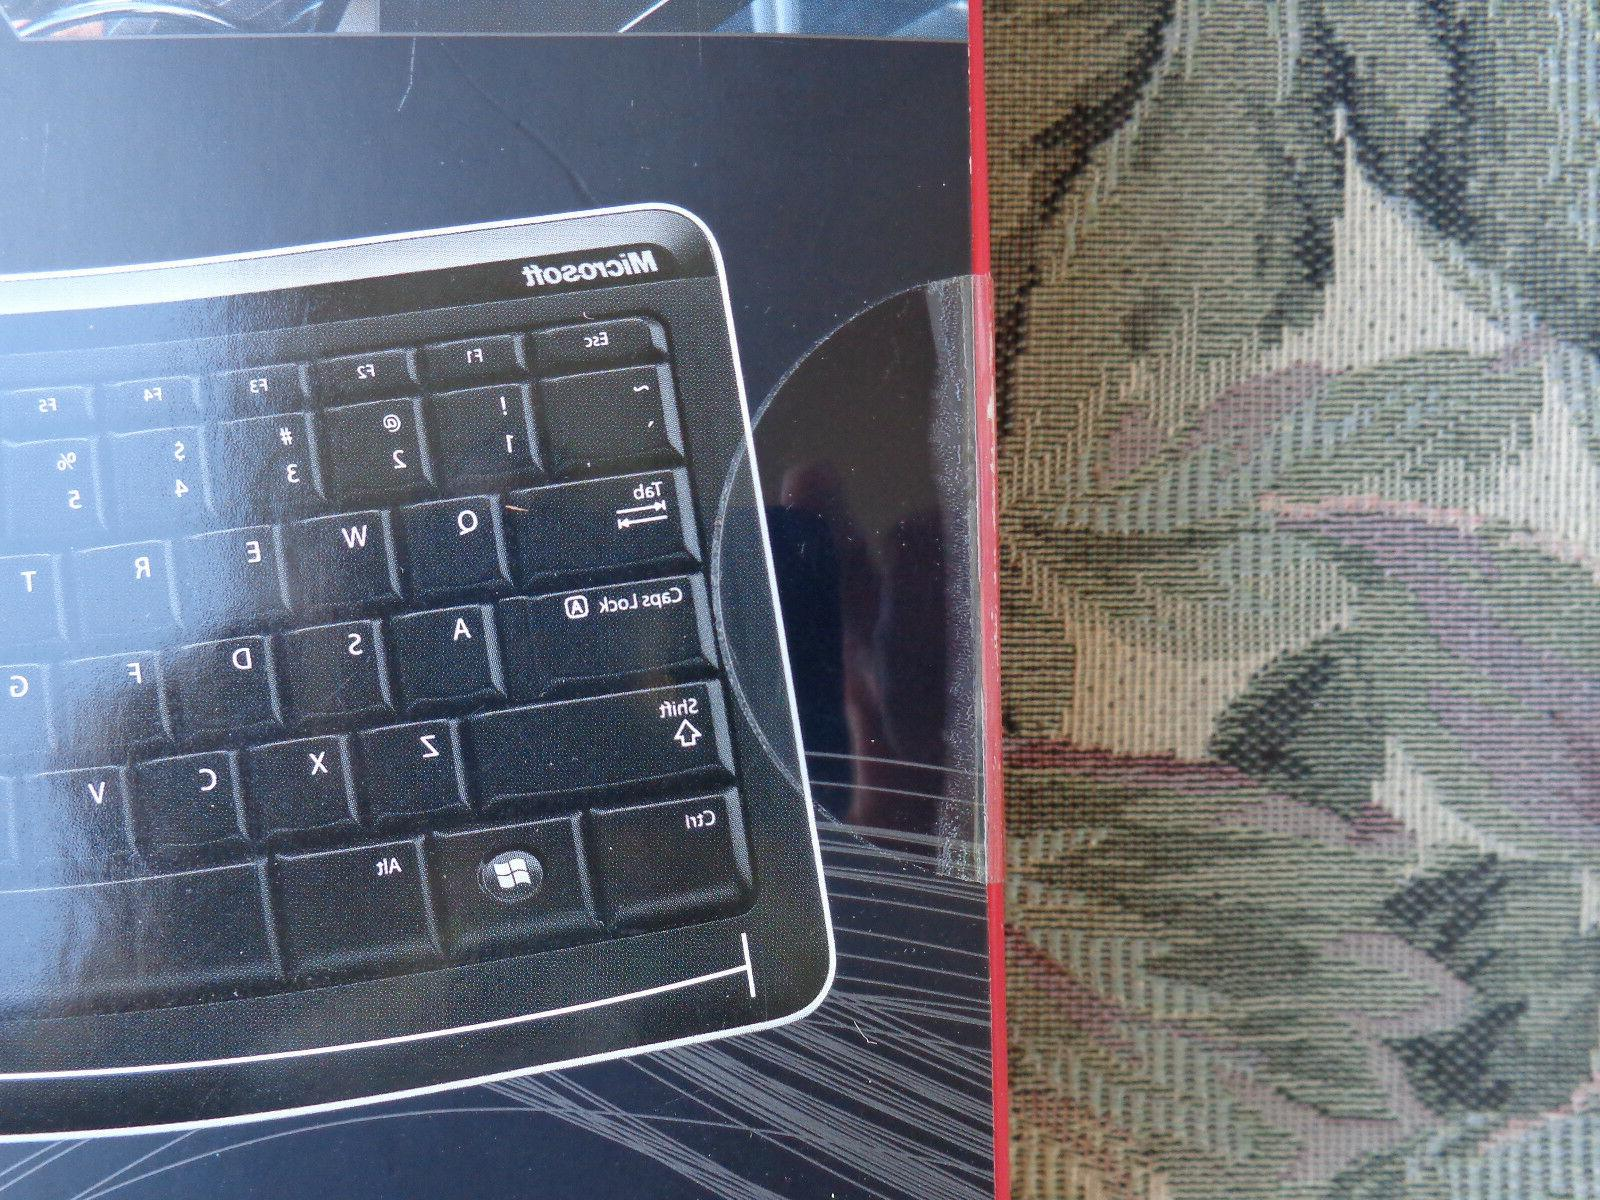 Microsoft Bluetooth Mobile Keyboard 6000 Number